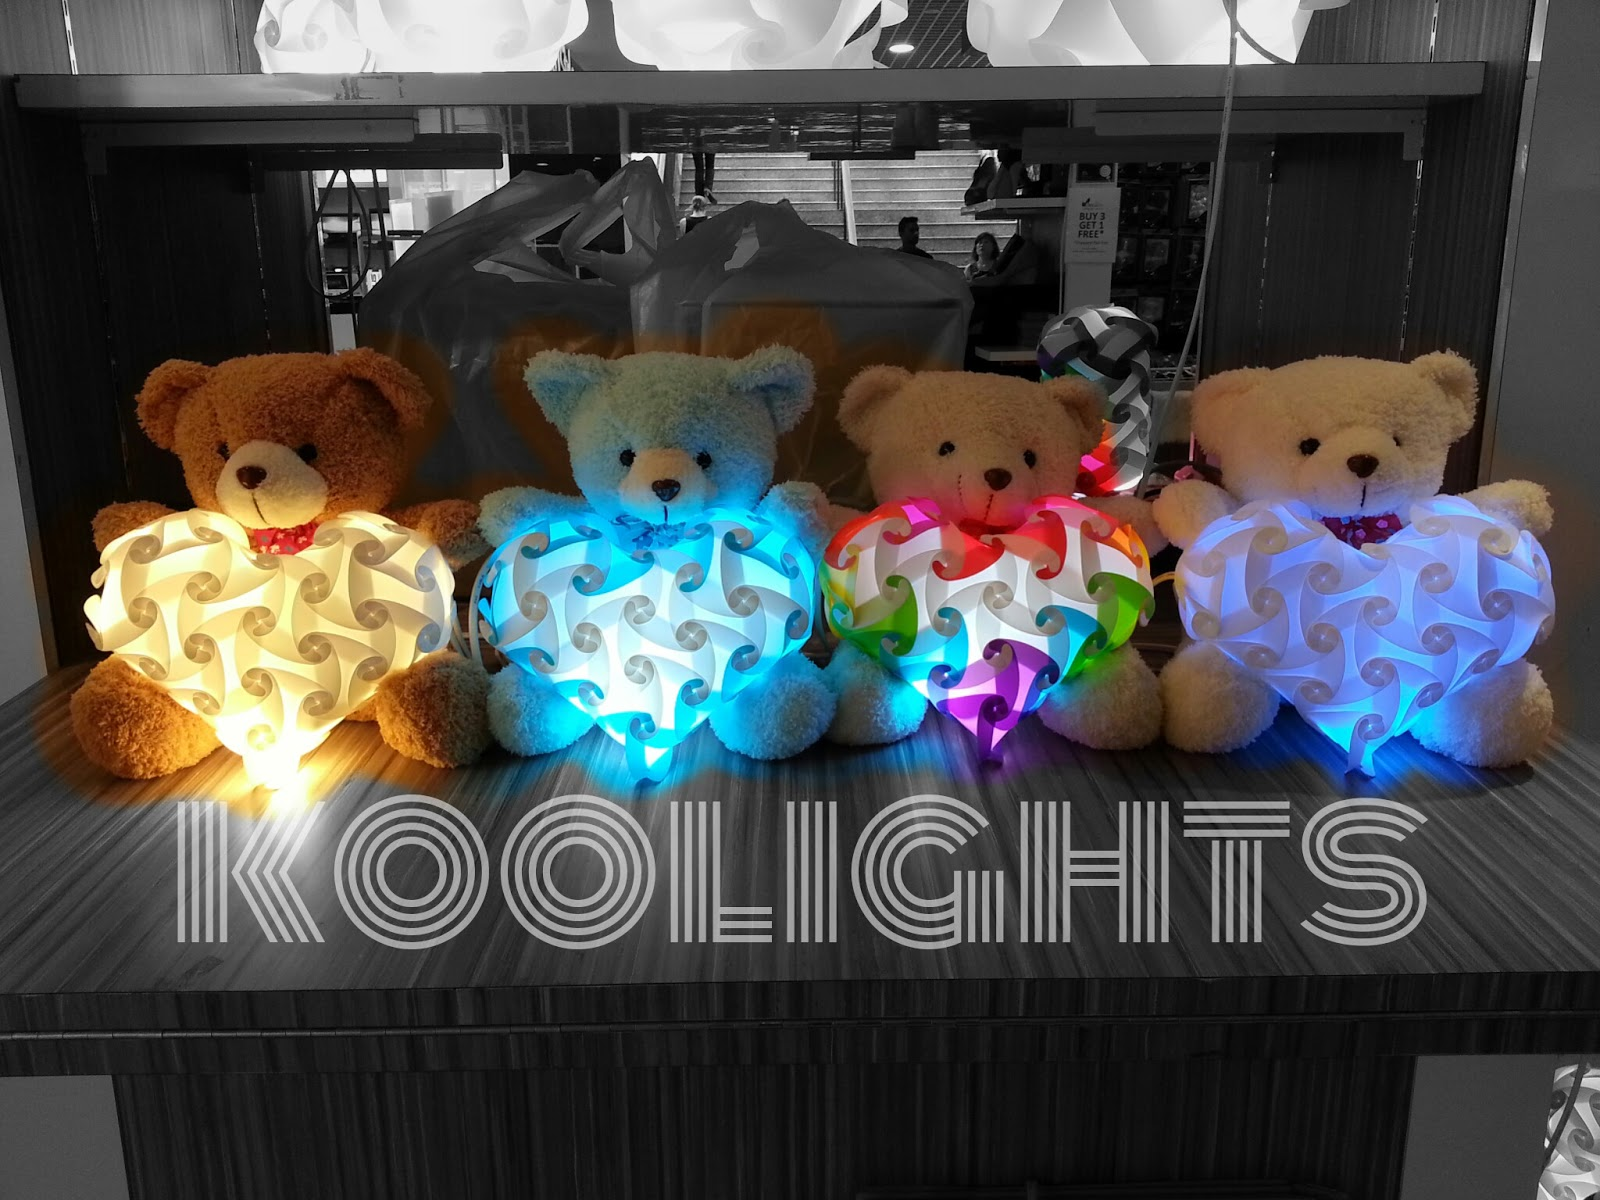 Teddy bear, plush toy, koolights, koolights korea, table lamp, luvalamp, iq lamp, iq light, jigsaw lamp, jigsaw light, puzzle lamp, puzzle light, handmade lights, lamps, night lamp, lampshades, night light, DIY, lights, christmas gifts, cool gifts, gifts, corporate, mrlampshop, rainbow colors, franchise, distributor, eco friendly, plastic bottle puncher, recycle, upcycle, reuse plastic, led, handicraft, hand made, creative, rainbow, red, pink, orange, yellow, green, purple, white, black, pp, plastic, change shapes, assemble, DIY, do it yourself